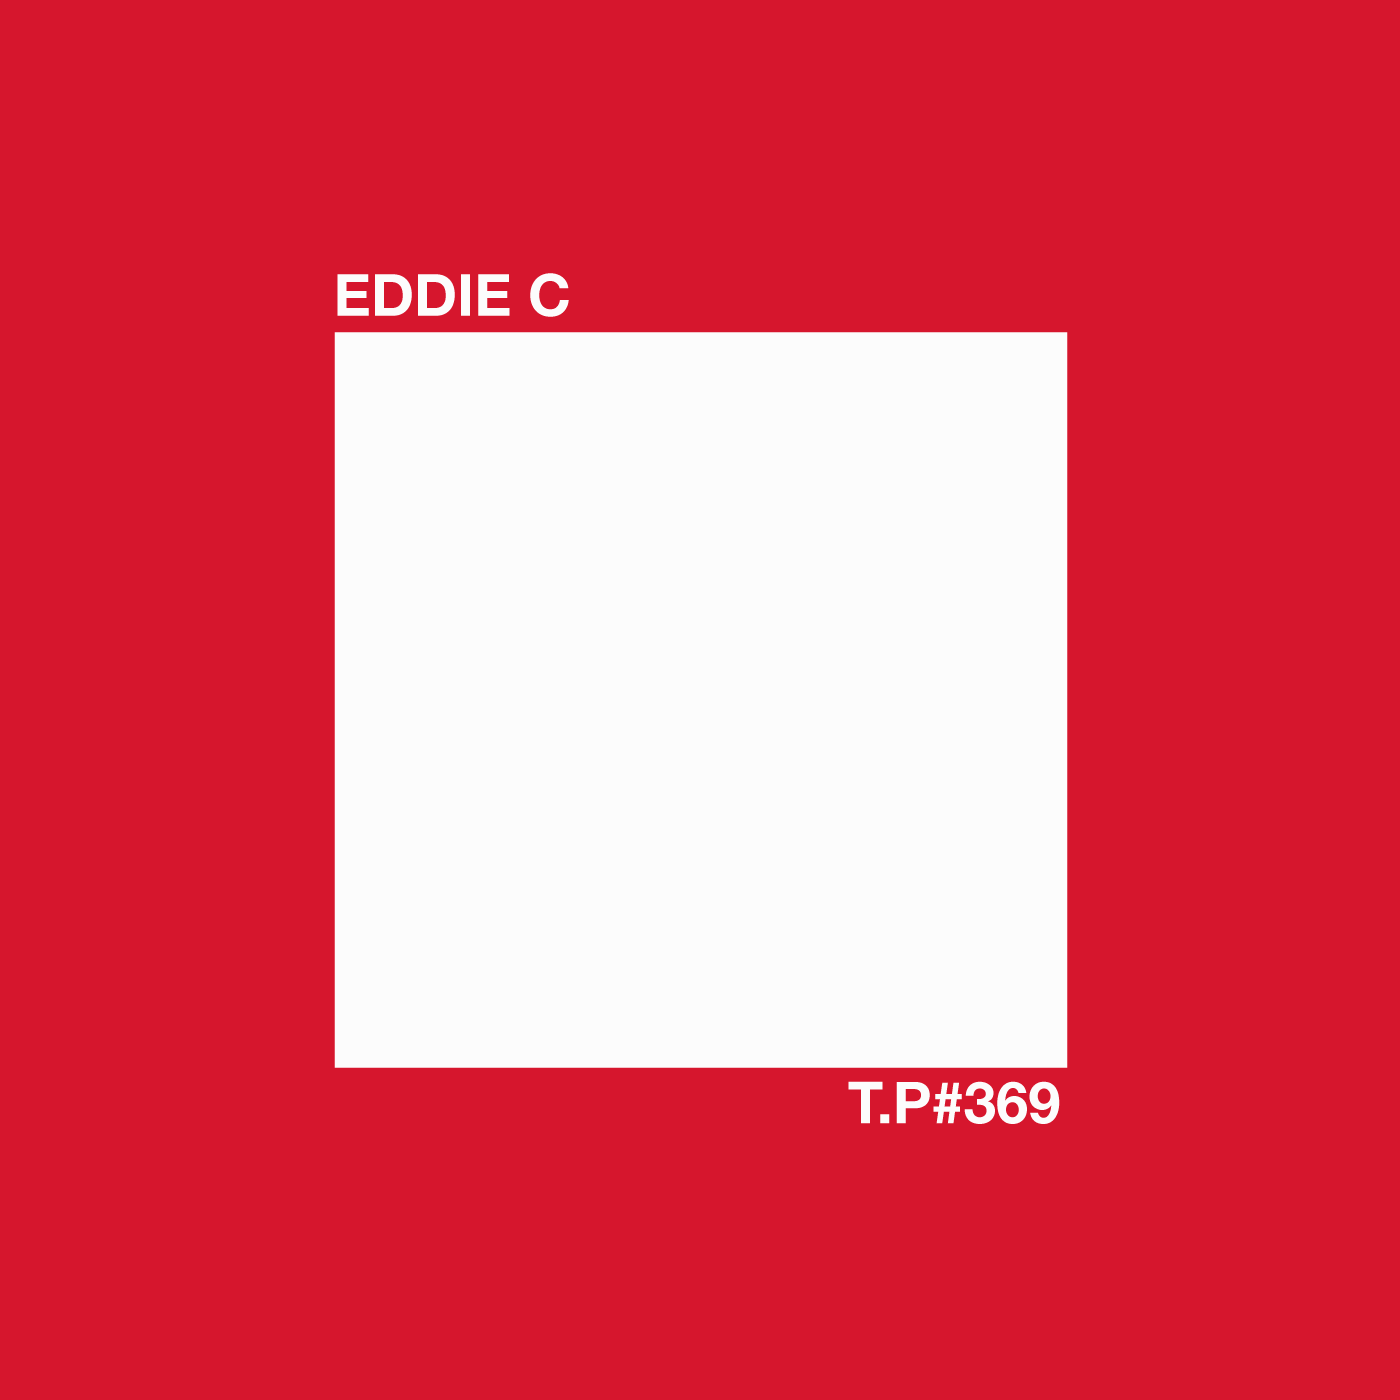 Eddie C, Mix, Test Pressing, Alternative, Disco, Noise, House, Business, Red Motorbike, Dude